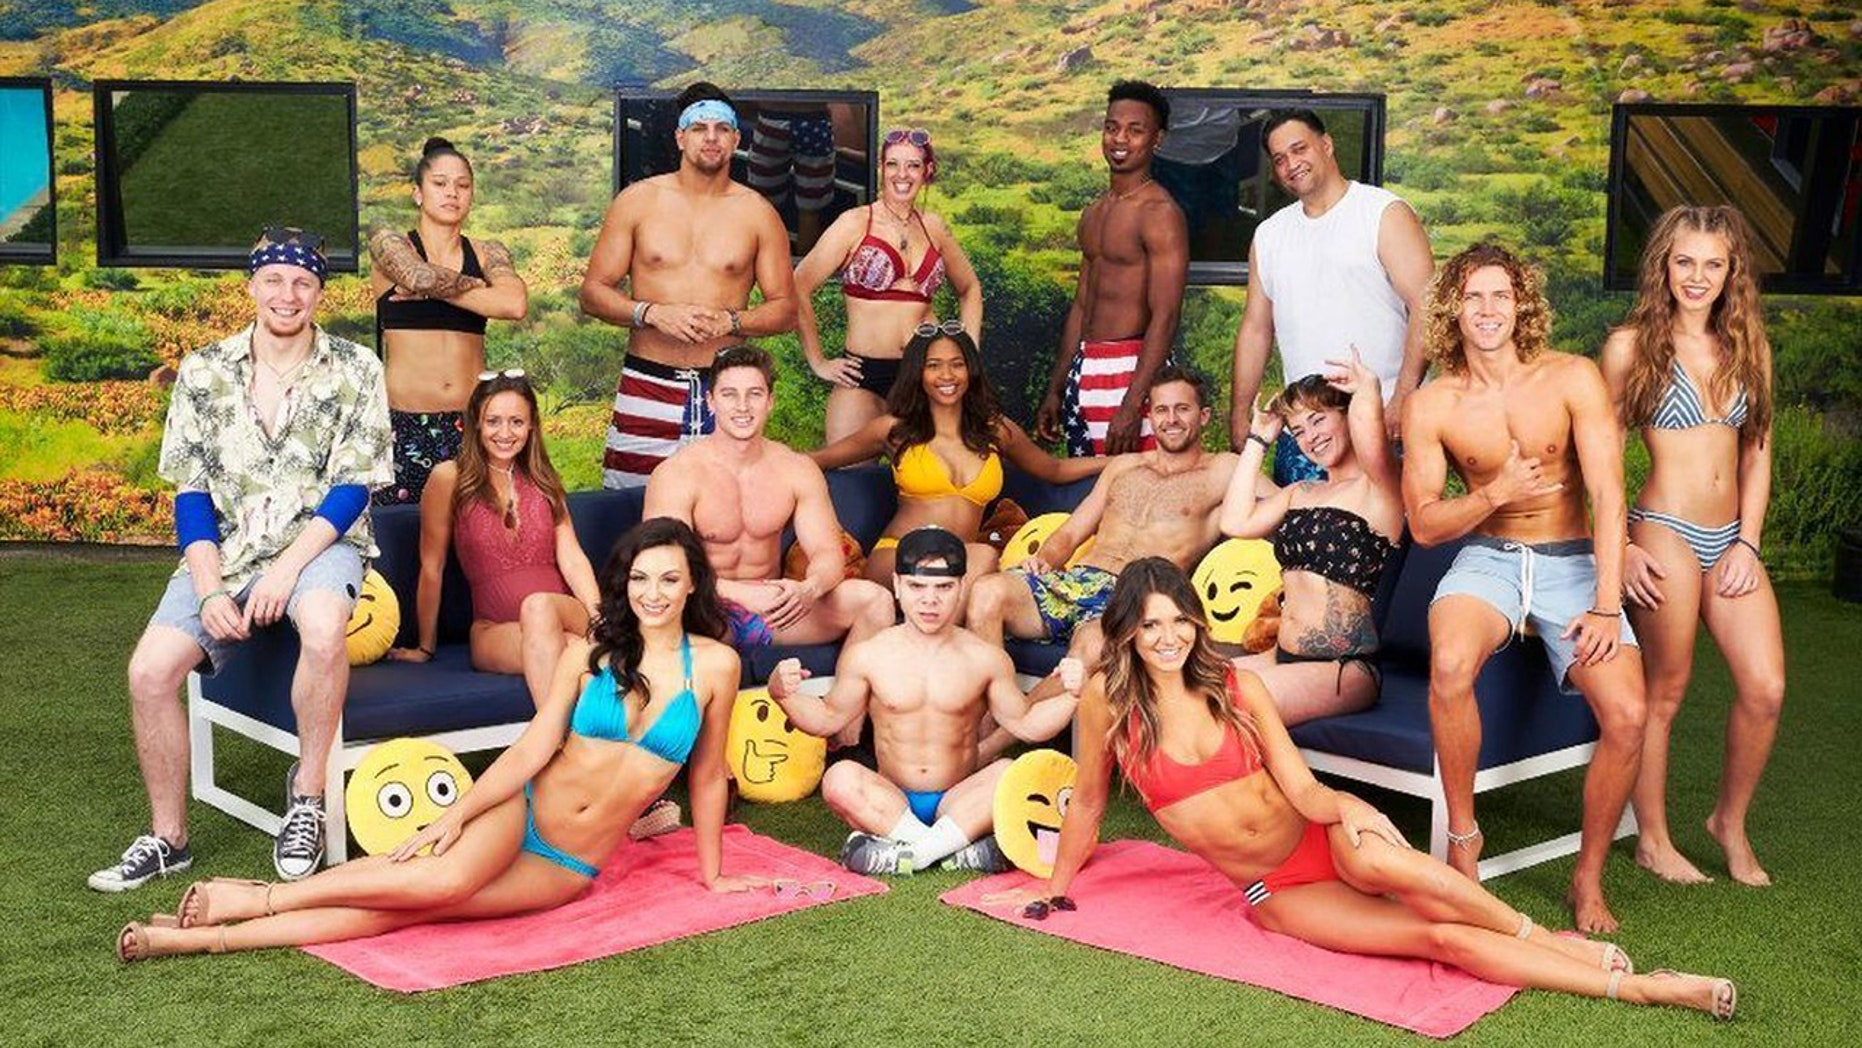 """CBS has vowed further action if contestants on the reality show """"Big Brother"""" continue to engage in """"inappropriate behavior and offensive comments."""""""